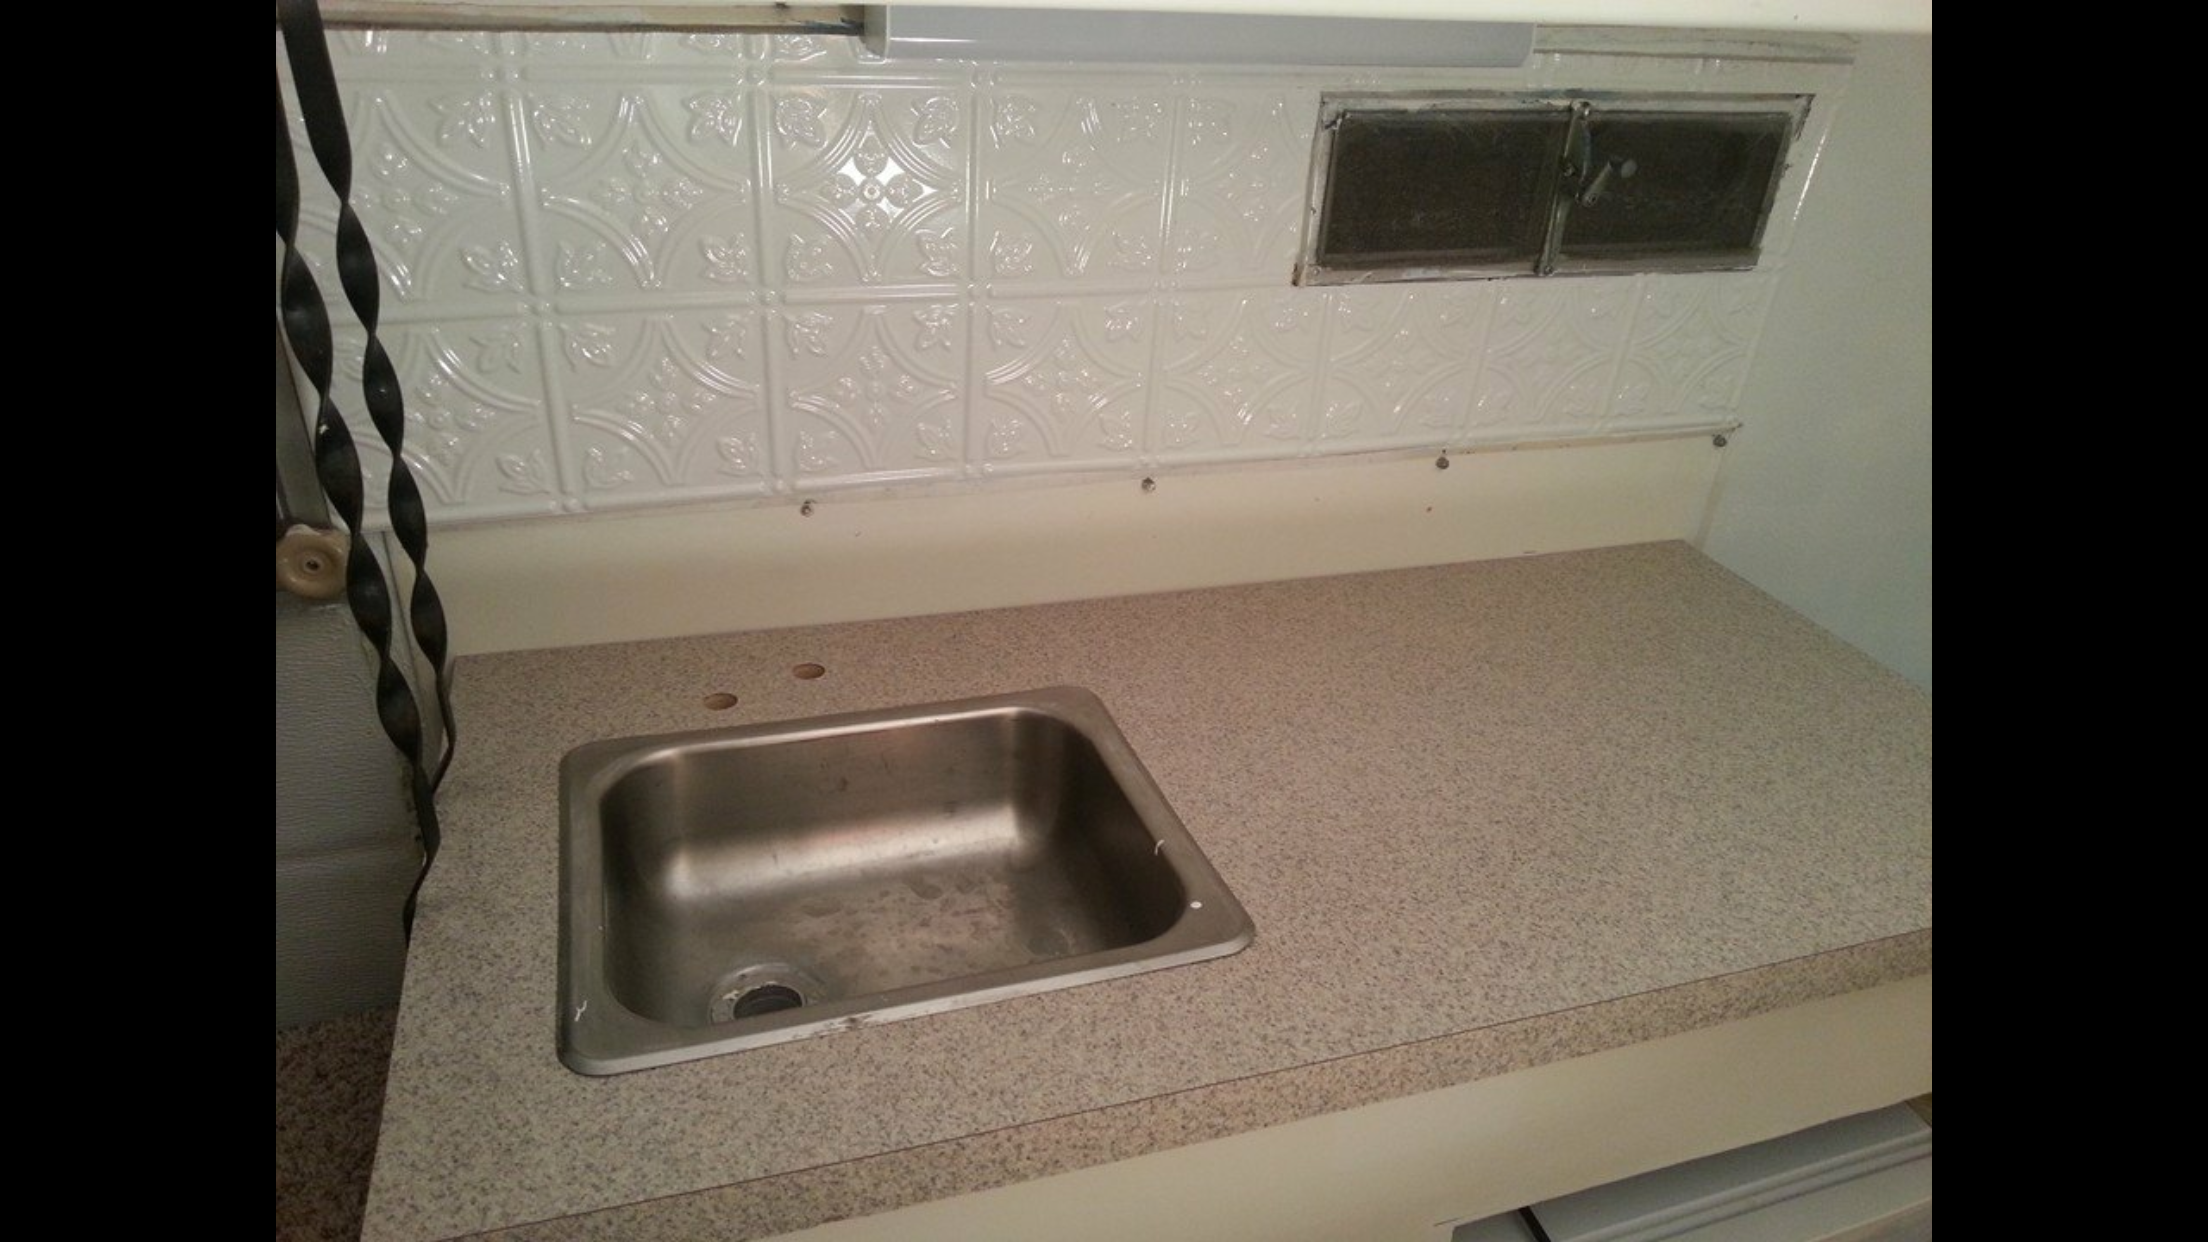 With The Scamp Camper I Got A New Backsplash That I Found On Clearance A New Countertop That I Found On Clearance At Menards But Old Sink Scamp Camper Sink